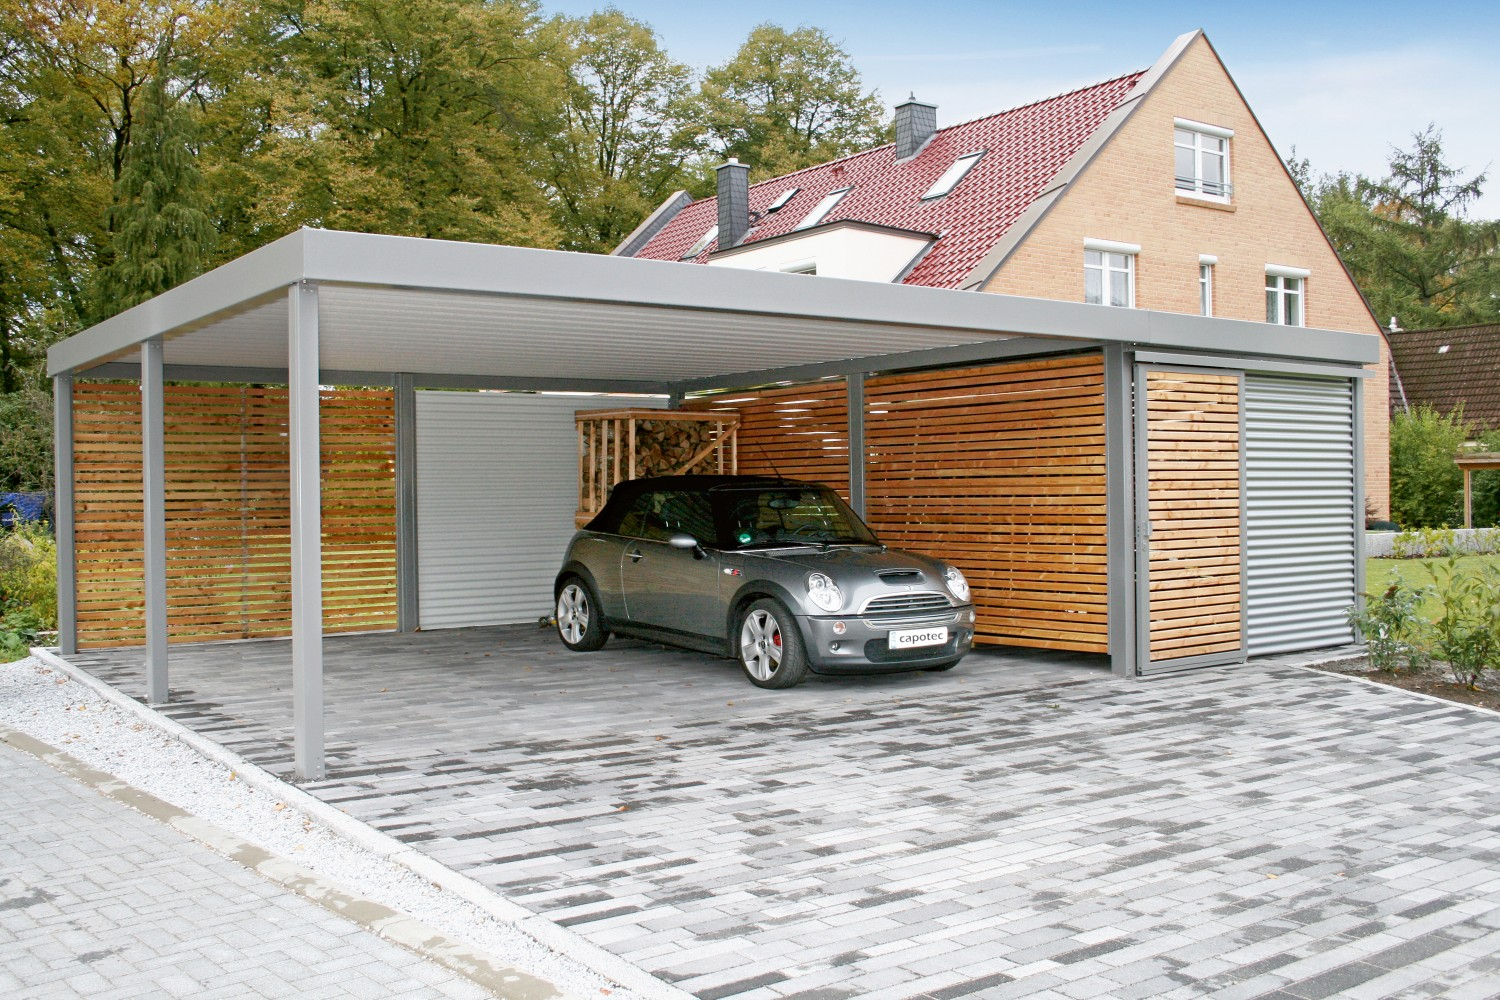 dach f r carport dach f r carport my blog carport ganz einfach selber bauen obi gartenplaner. Black Bedroom Furniture Sets. Home Design Ideas